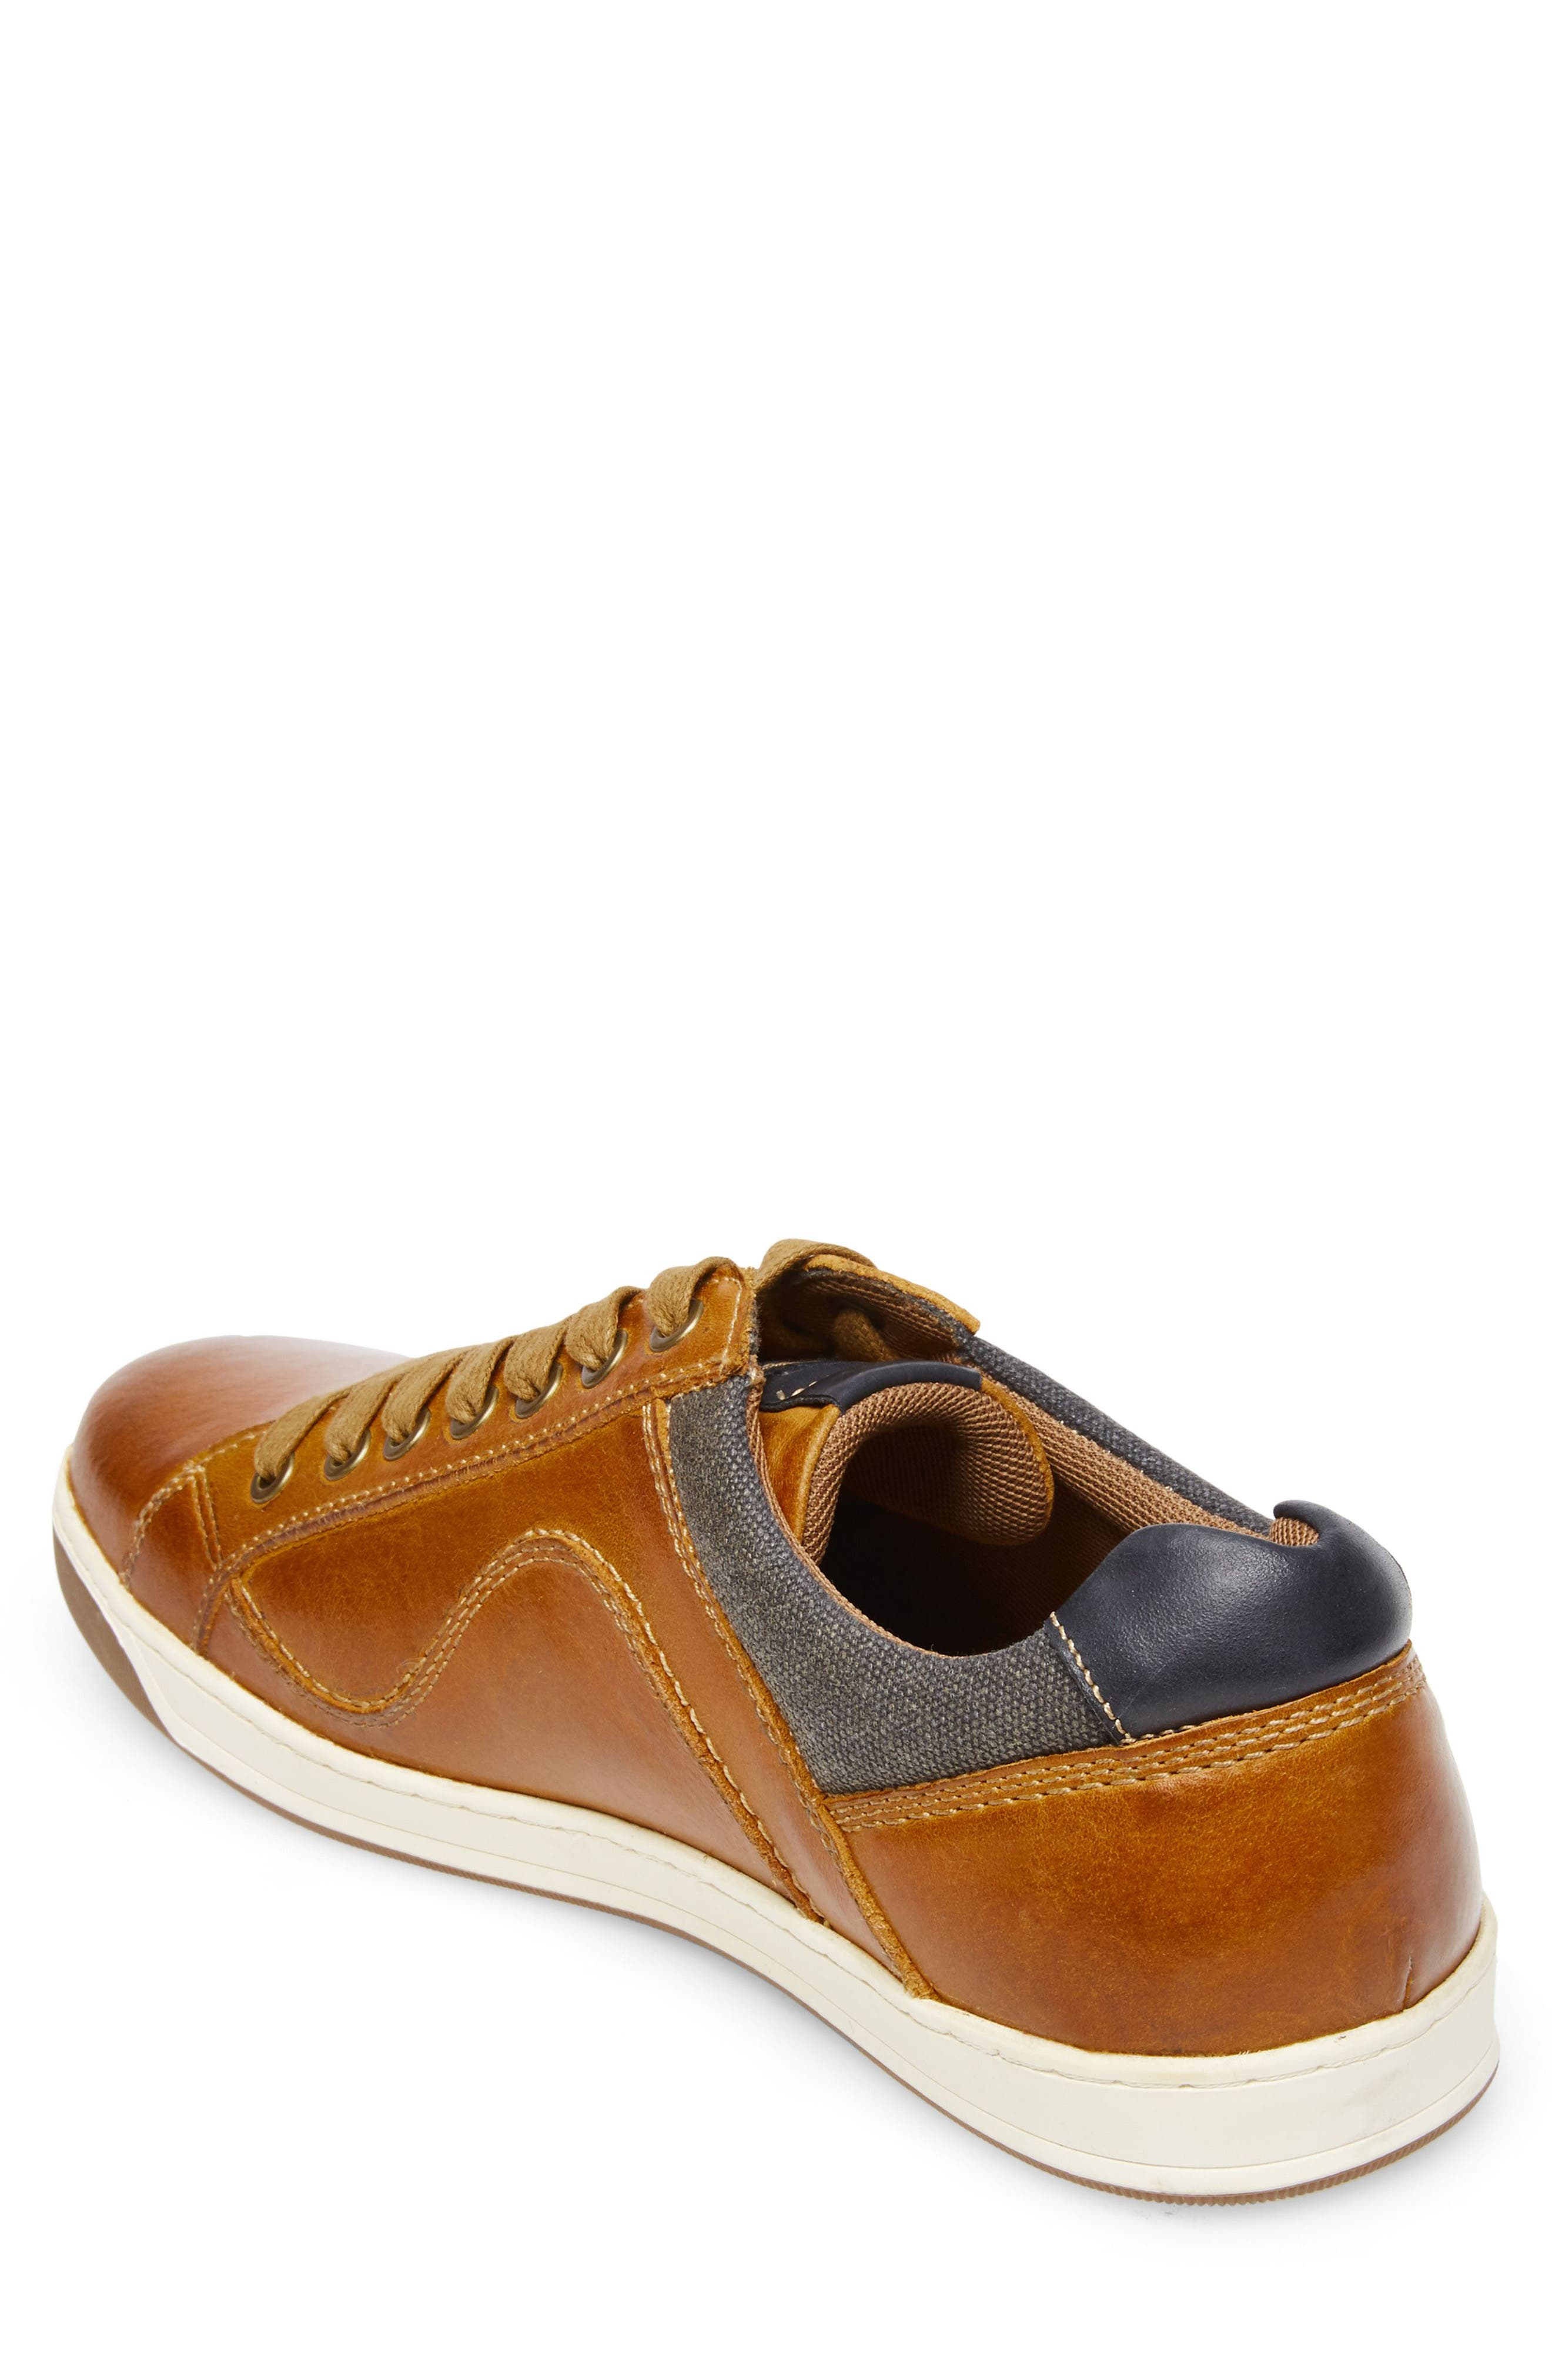 Chater Low Top Sneaker,                             Alternate thumbnail 2, color,                             RUST LEATHER